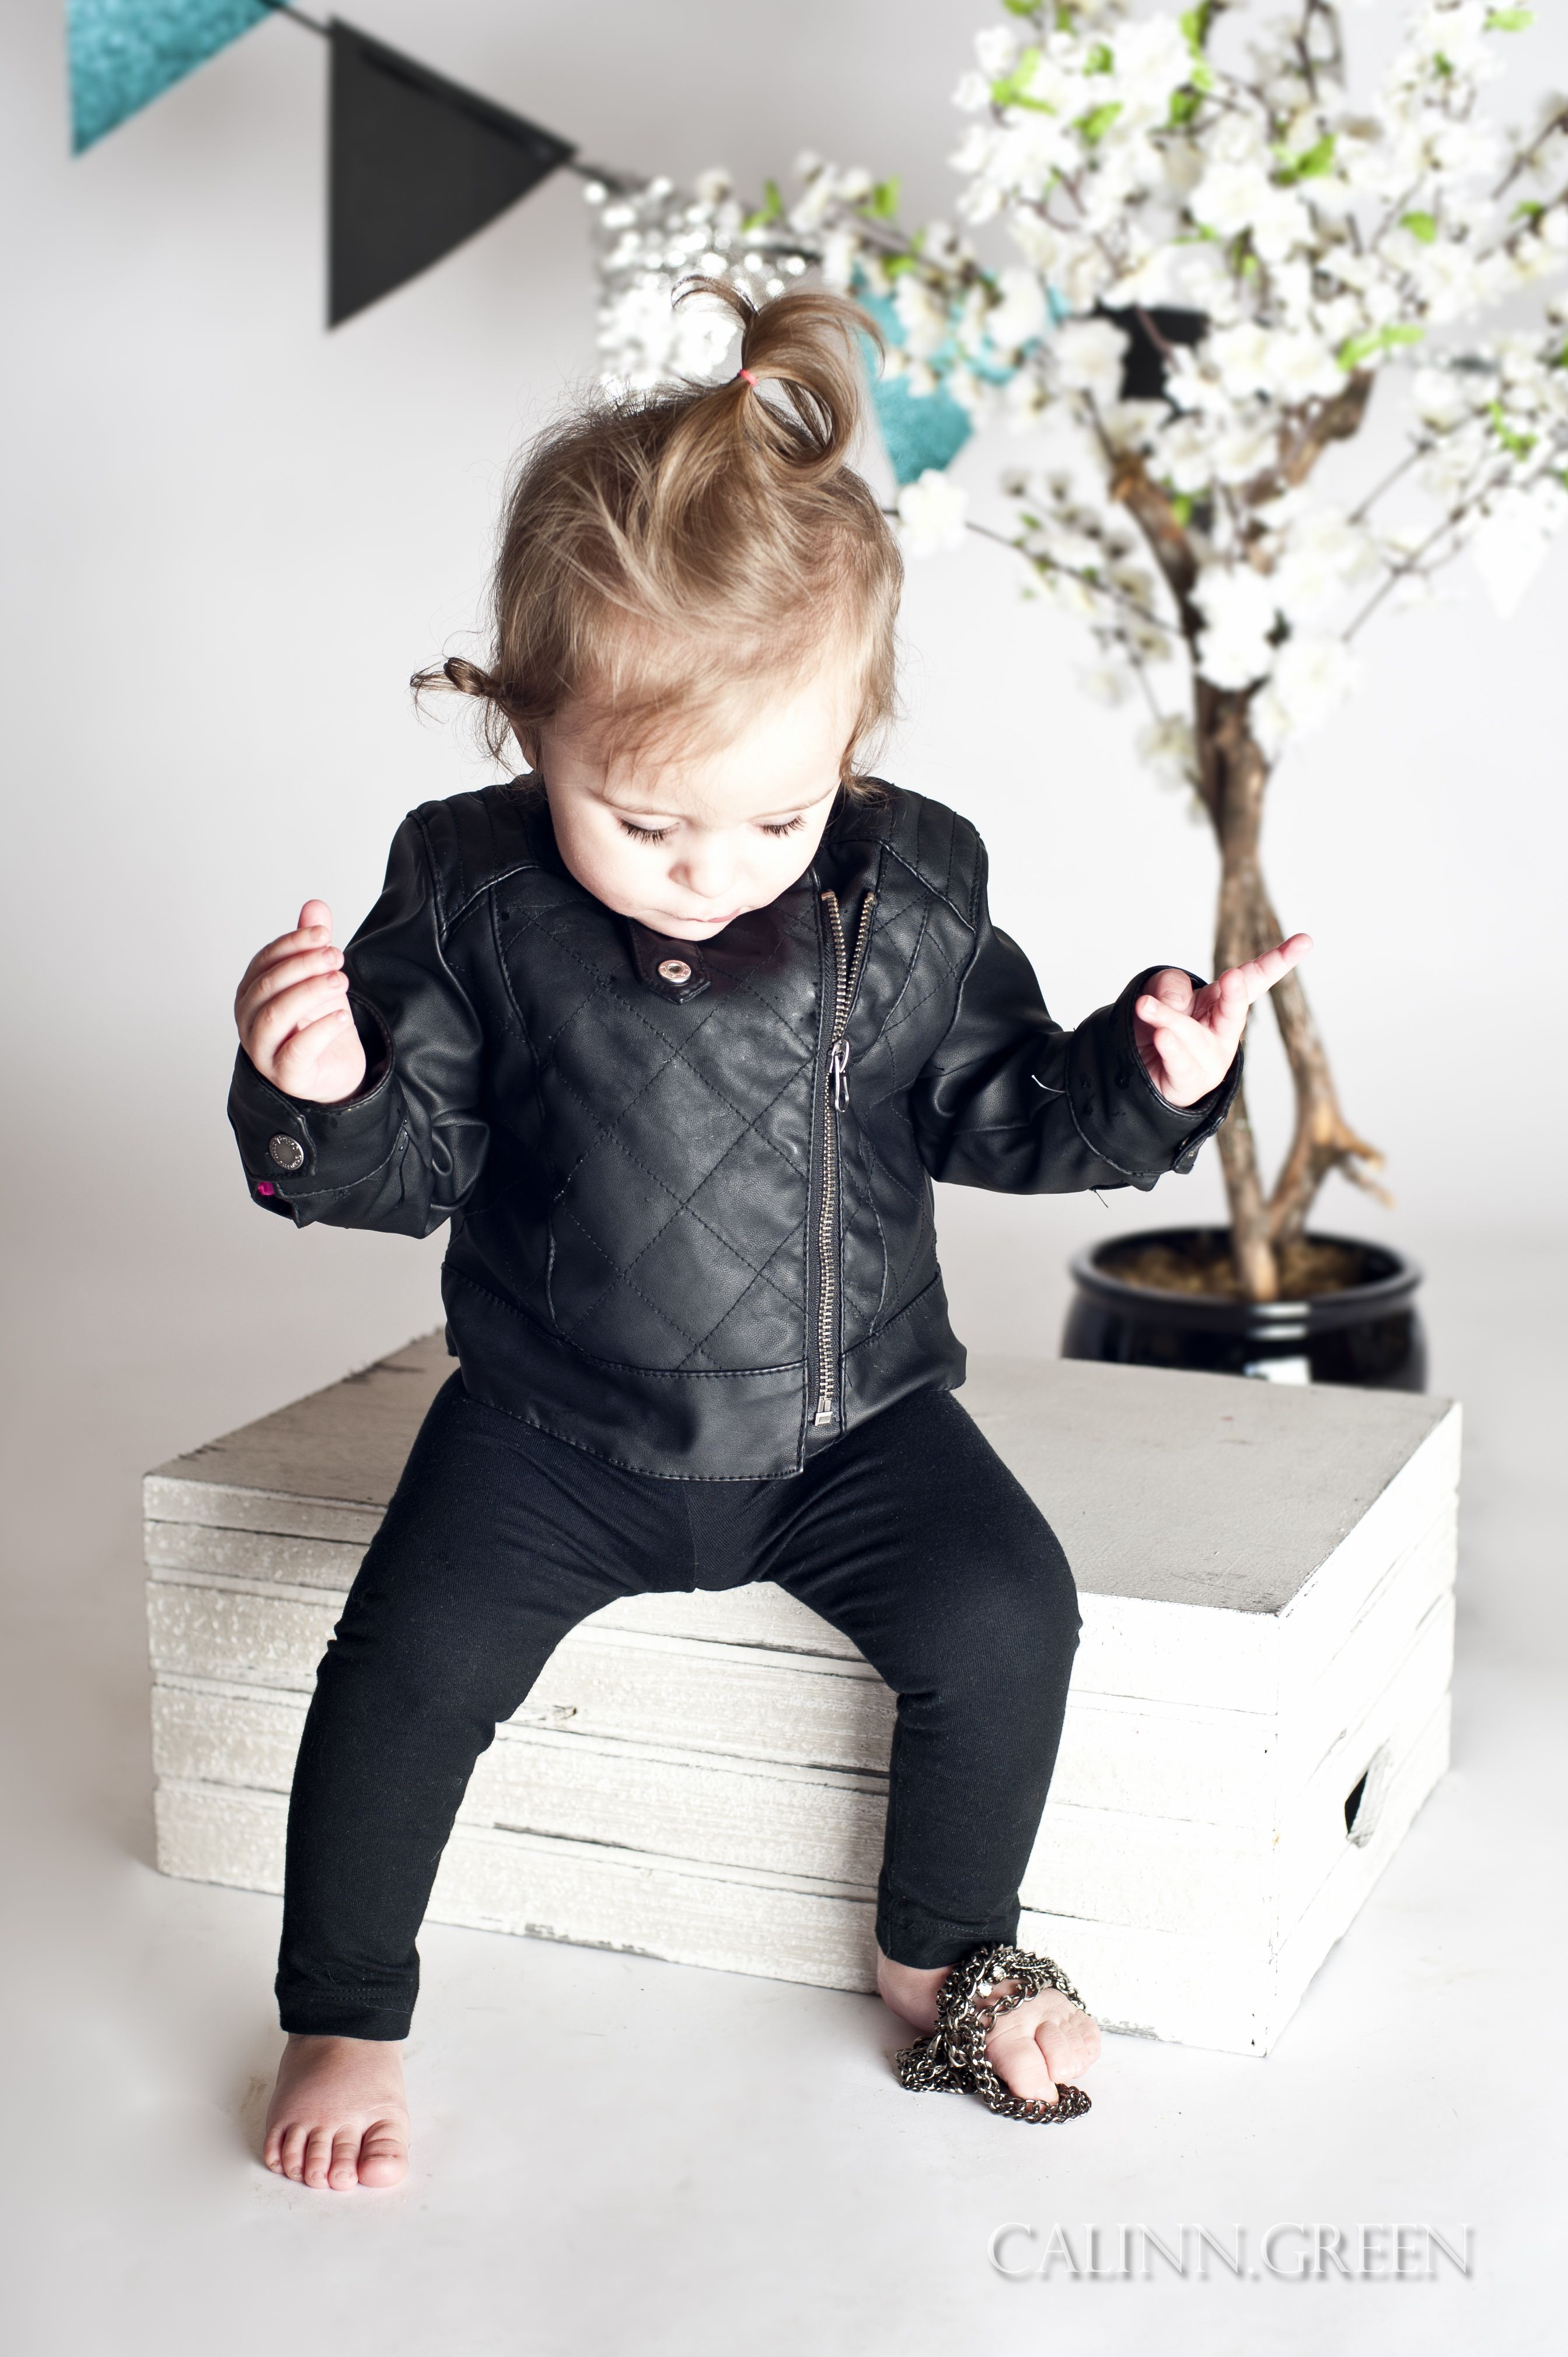 My Baby Girl In Her Leather Jacket Baby Fashion Kids Fashion Girl Outfits [ 4038 x 2687 Pixel ]